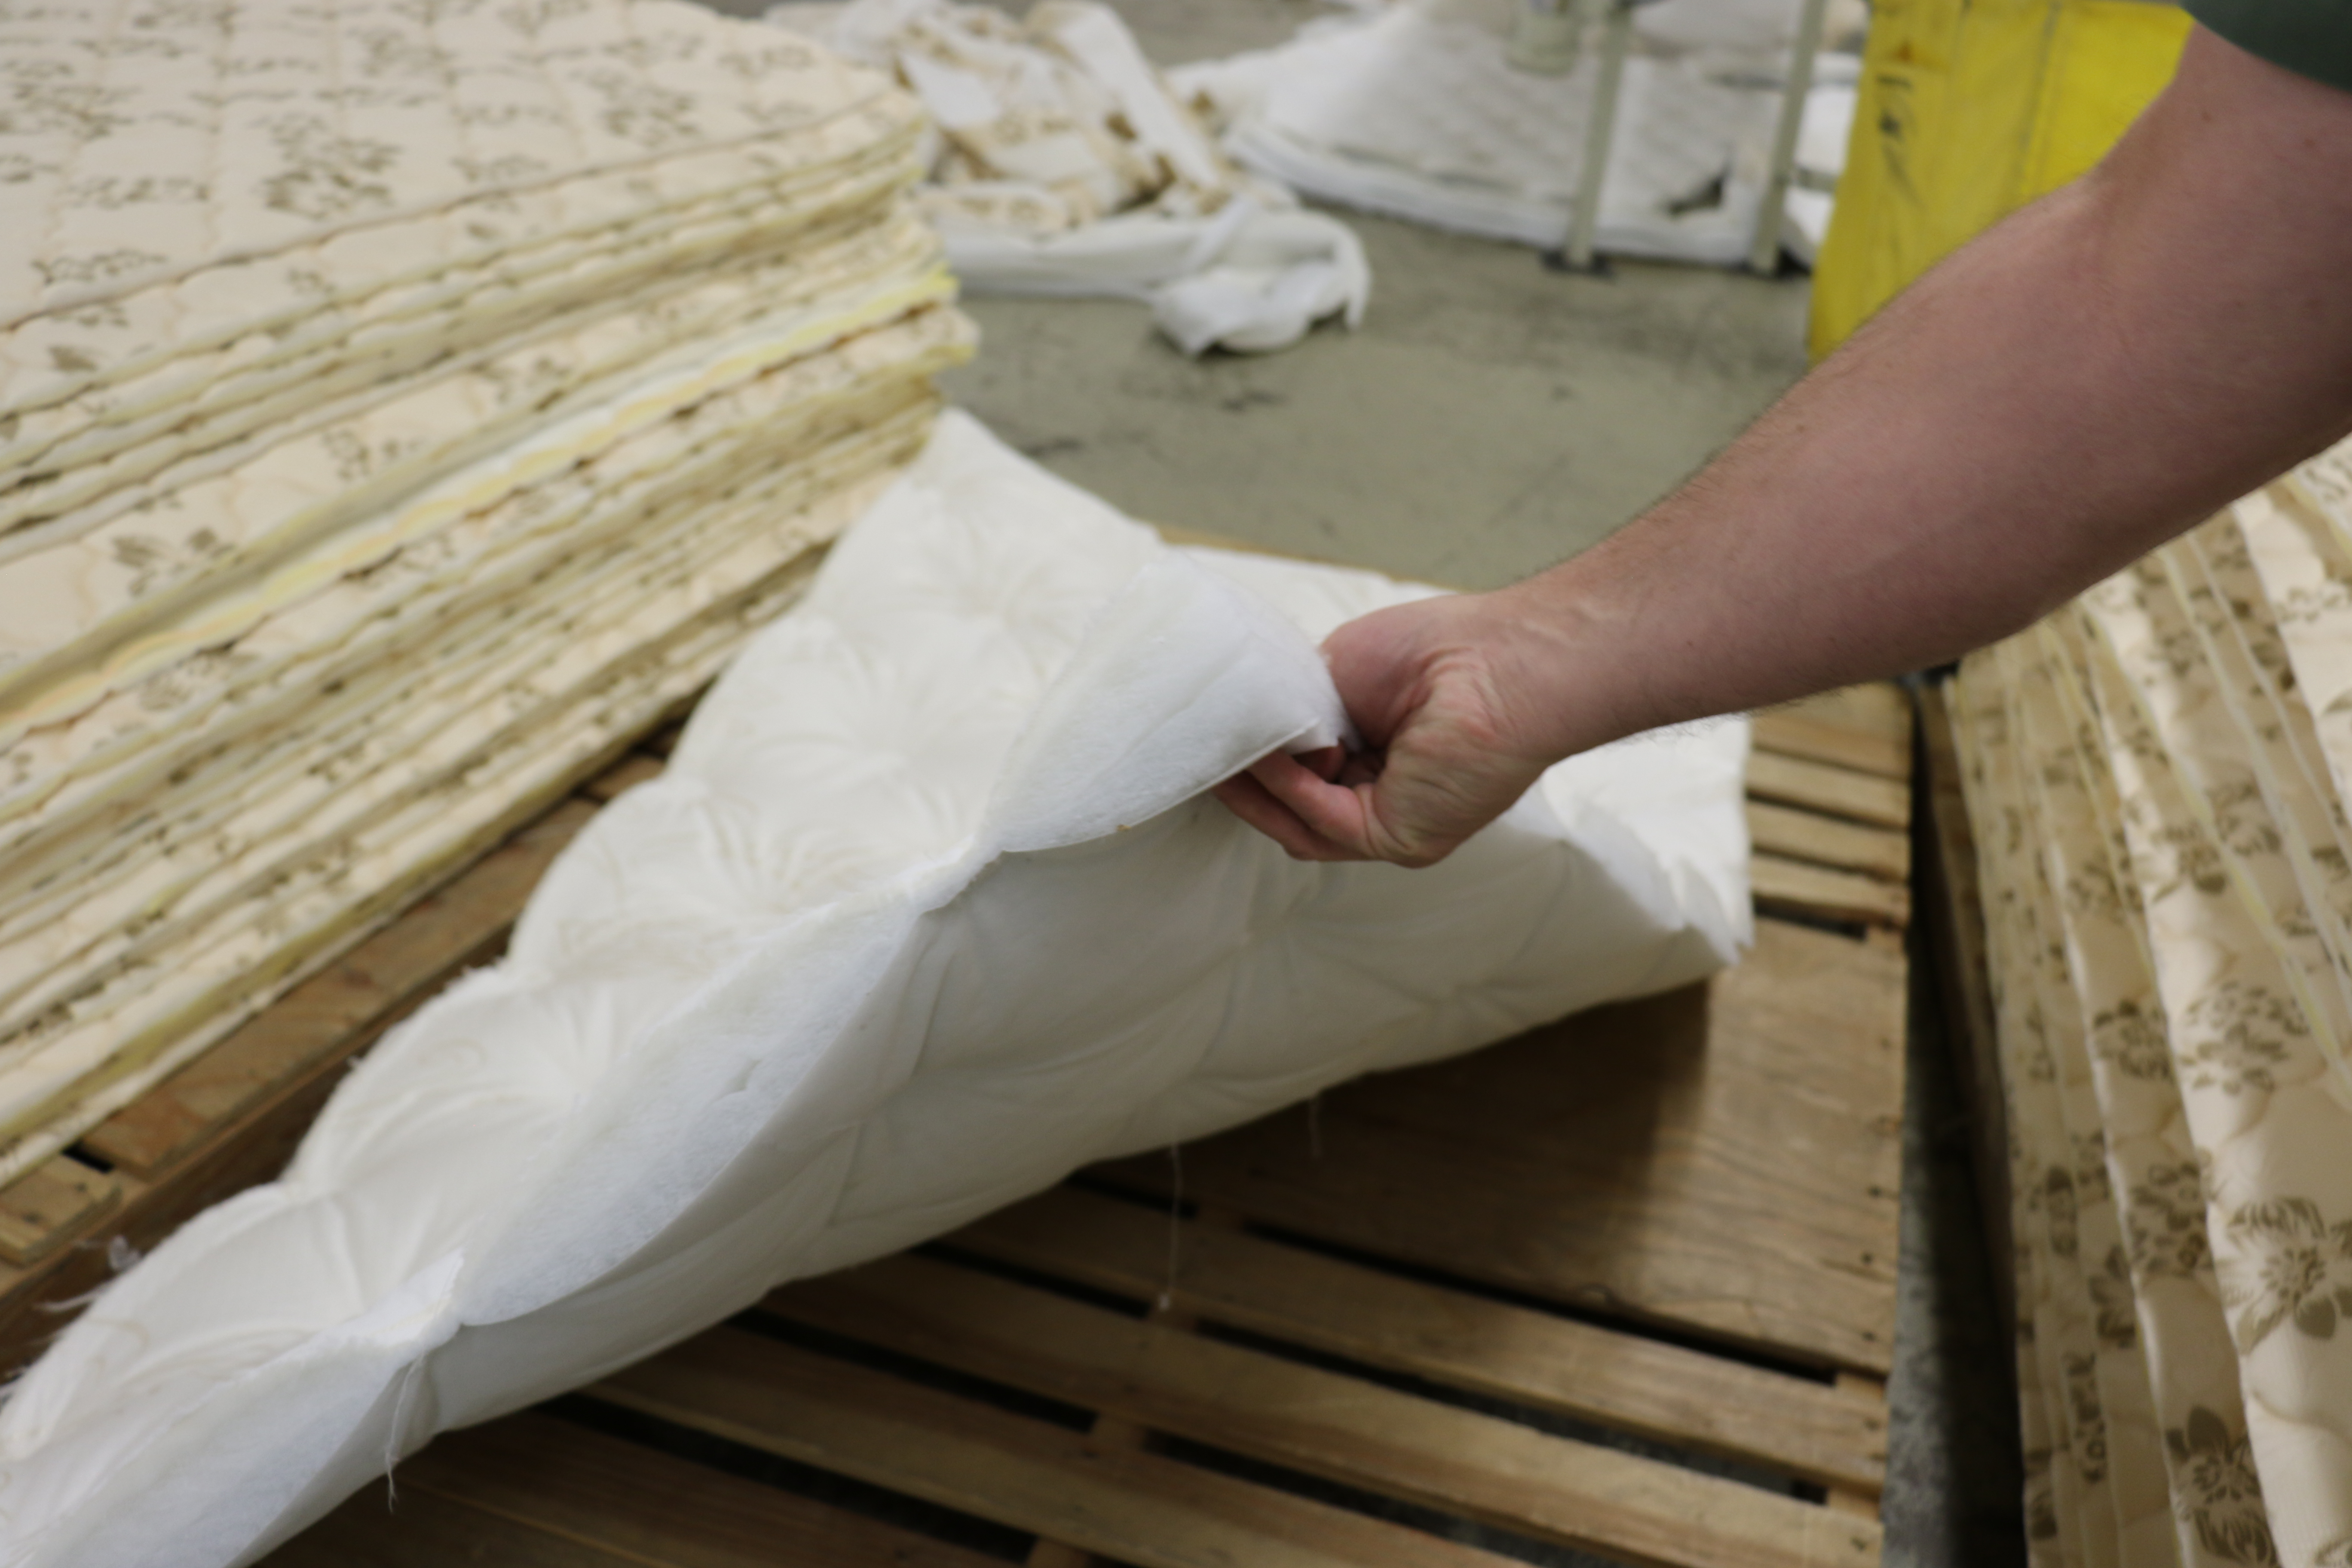 Quilting from a mattresses made in the Deseret Manufacturing facility.